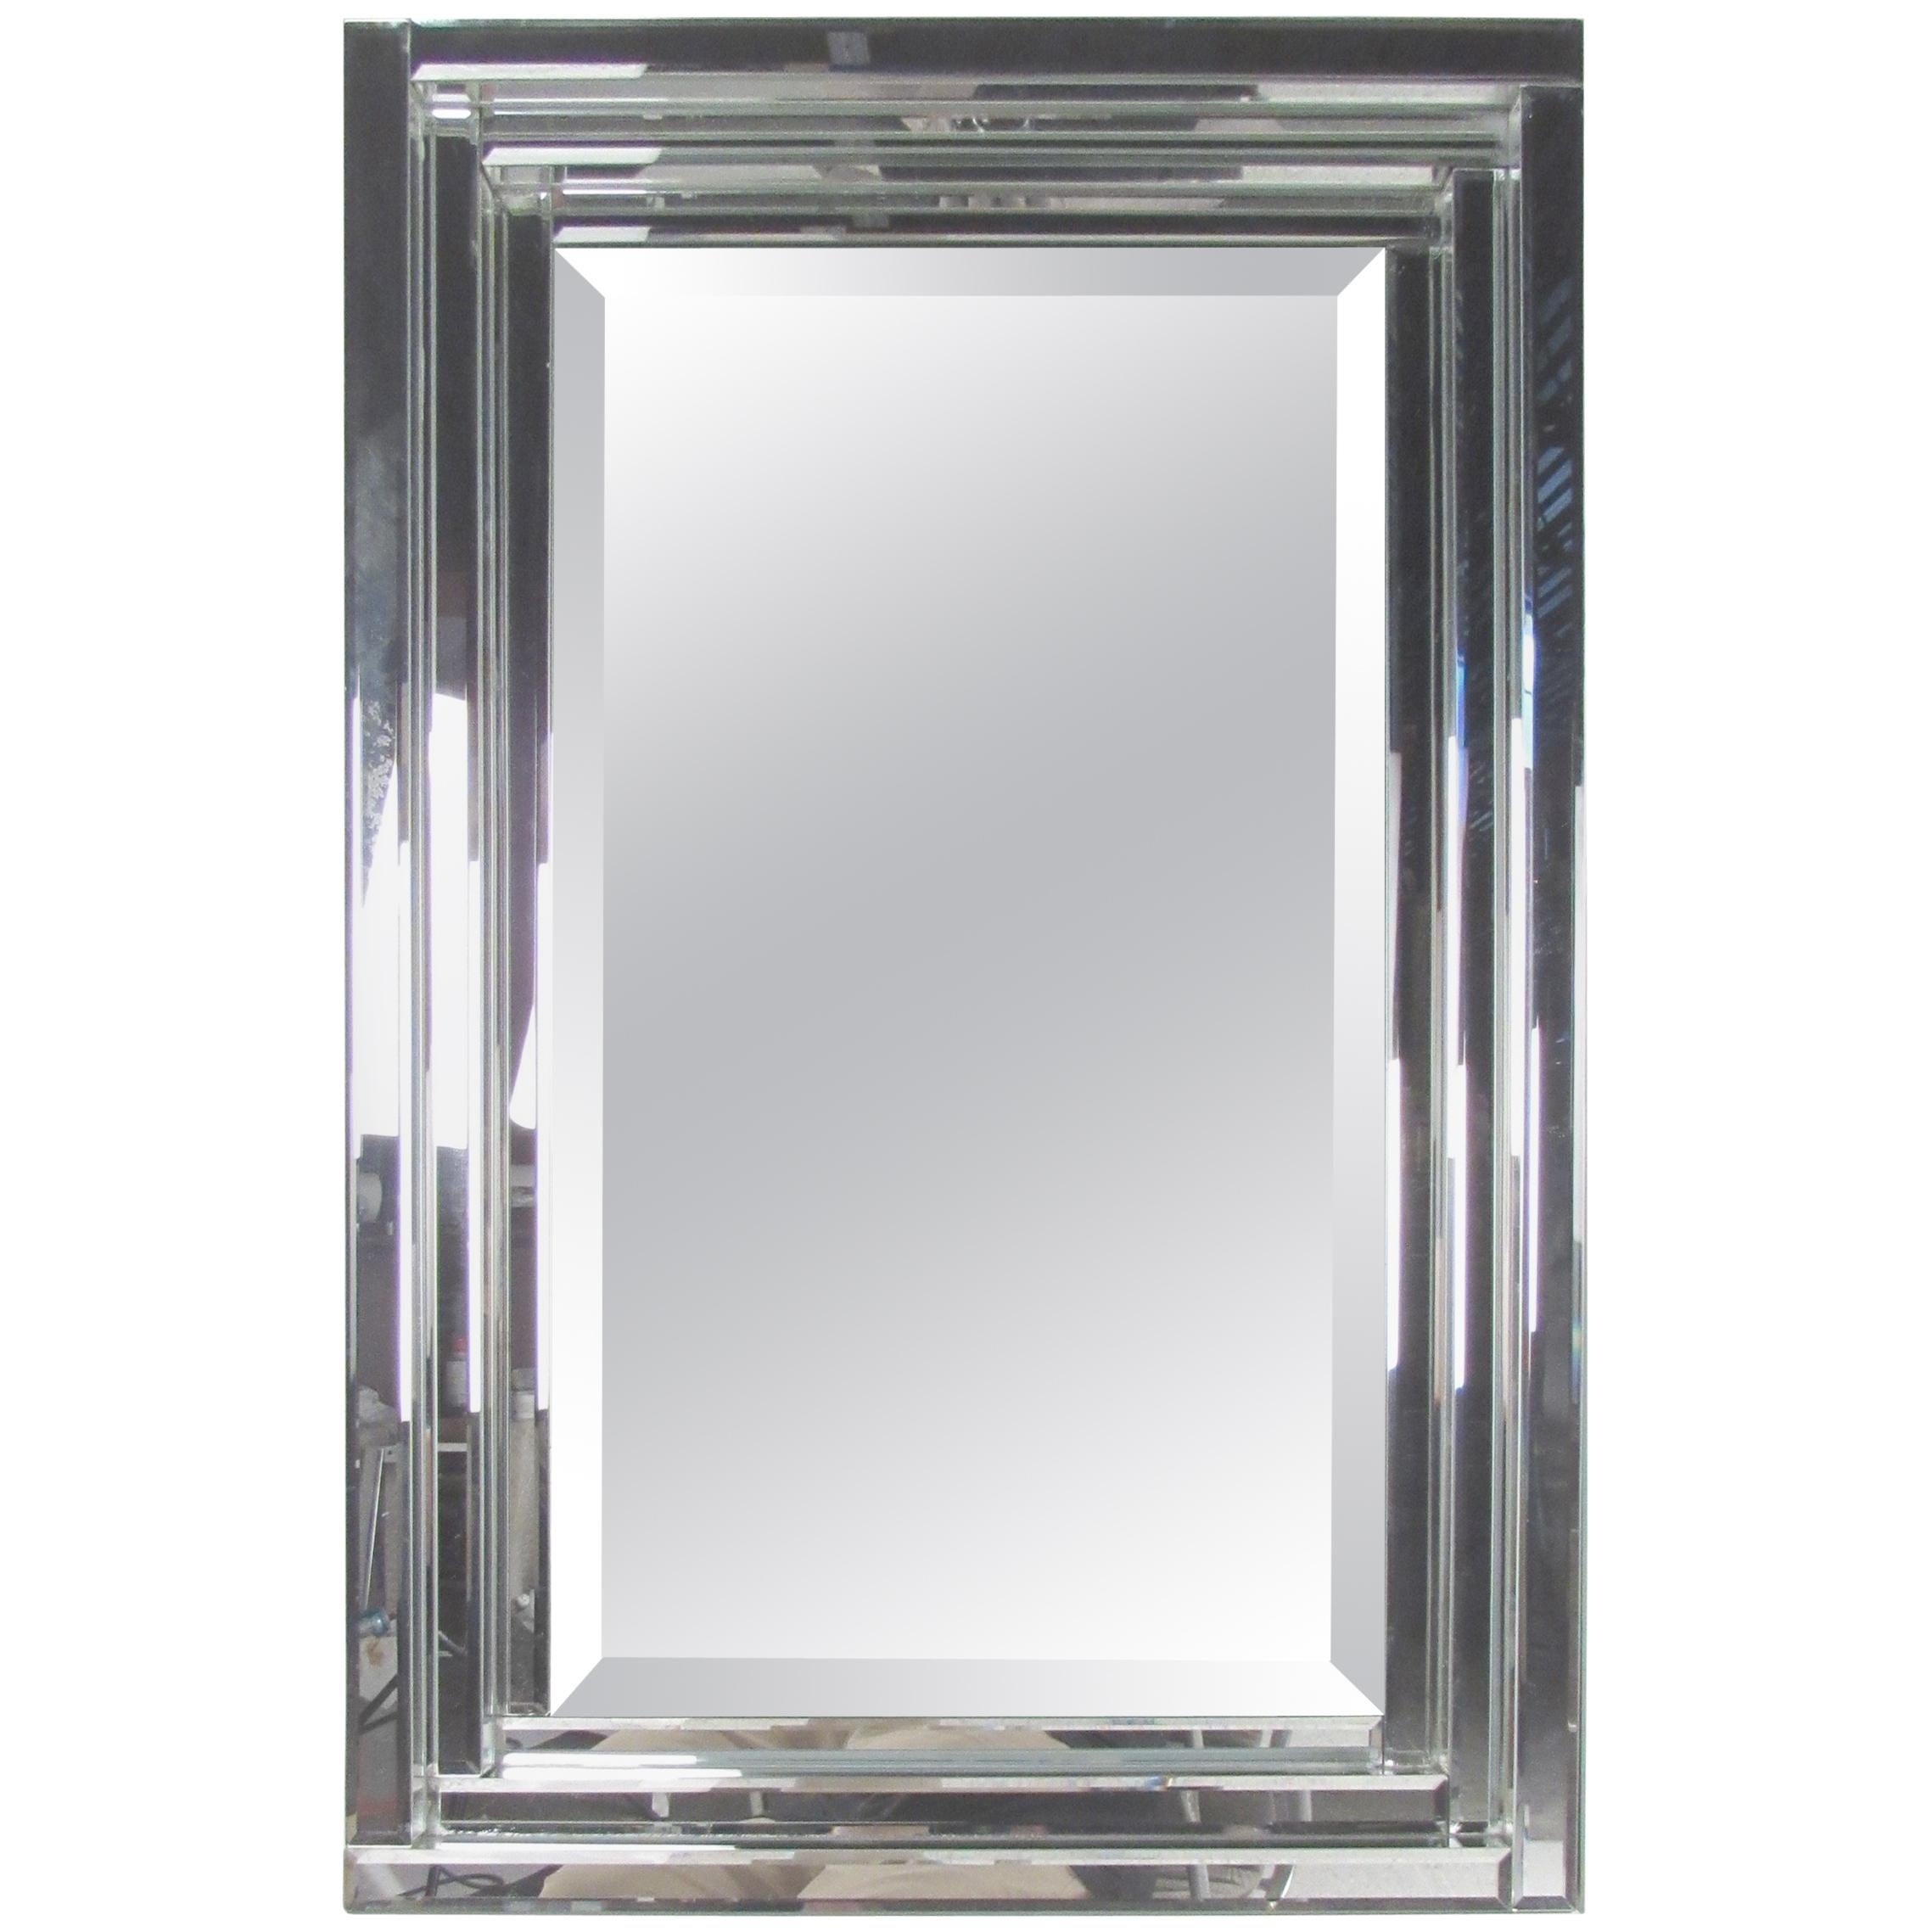 Contemporary Modern Wall Mirror With Bevelled Edge For Sale